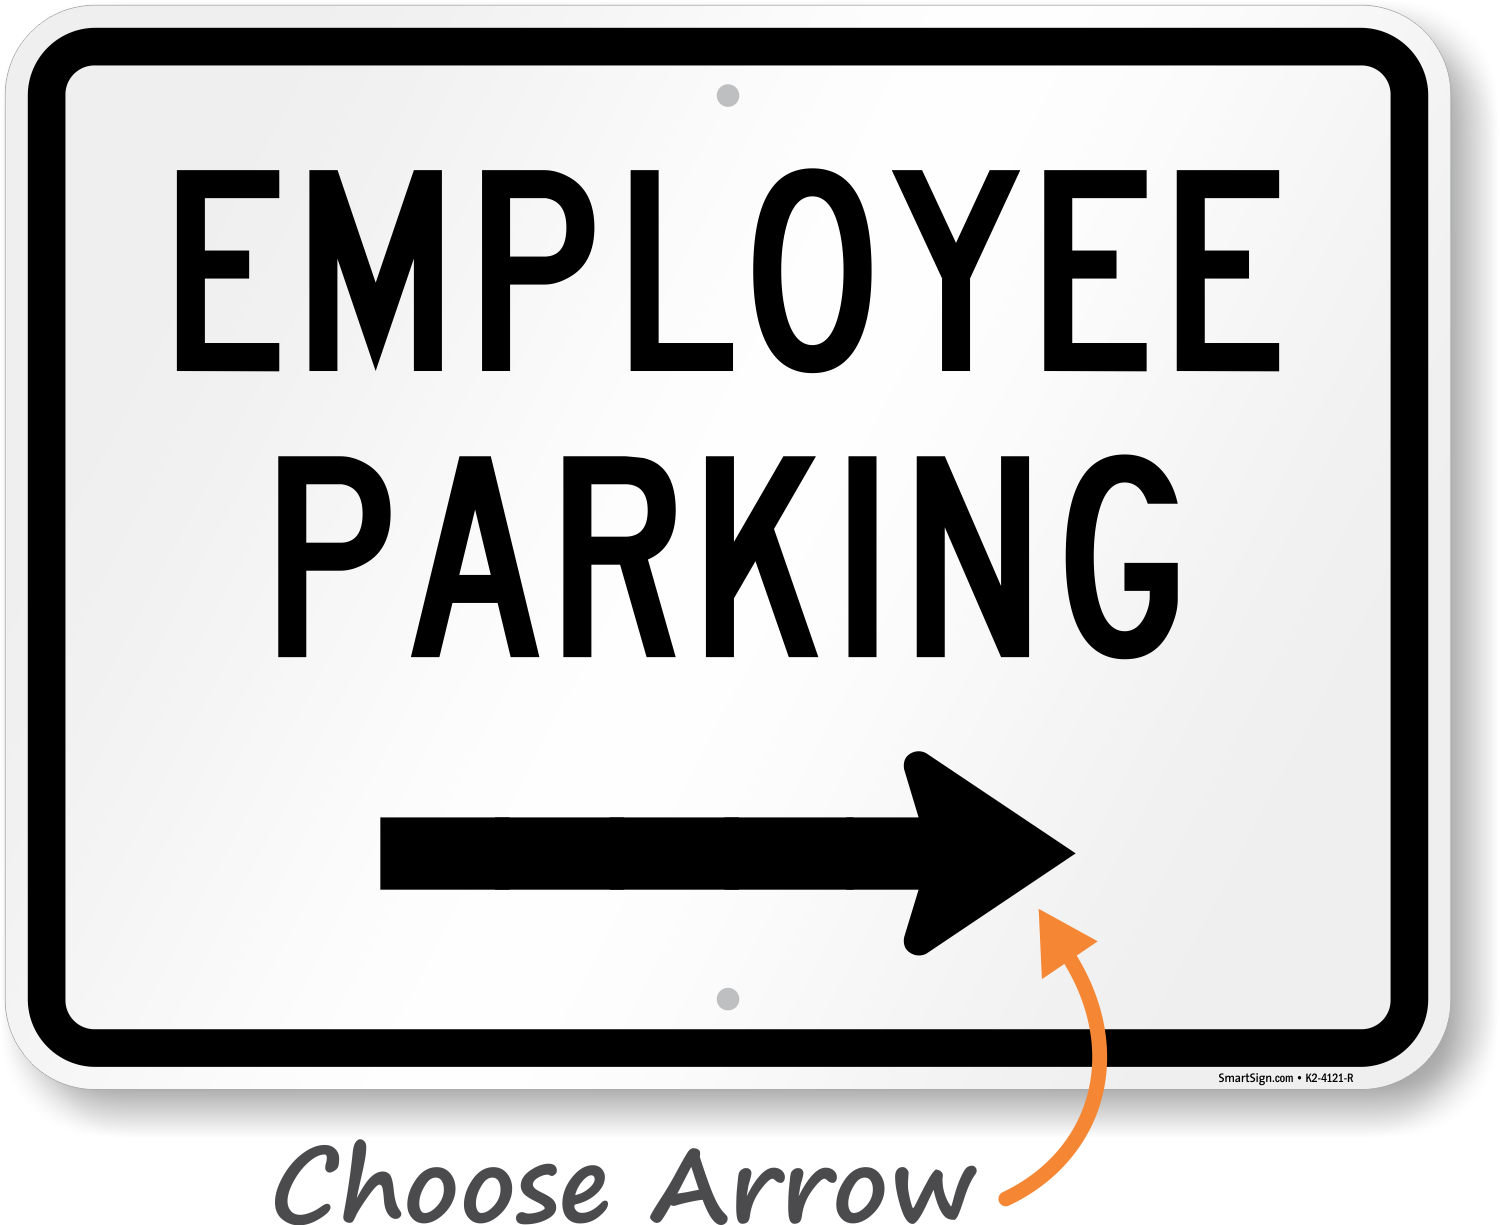 Employee Parking Signs And Stencils  Reserved Parking Signs. Penyuluhan Signs. Farari Signs Of Stroke. Charcot Disease Signs. Creative Advertising Signs. Disabled Parking Signs. Standard Signs Of Stroke. Parenting Signs Of Stroke. Deep Depression Signs